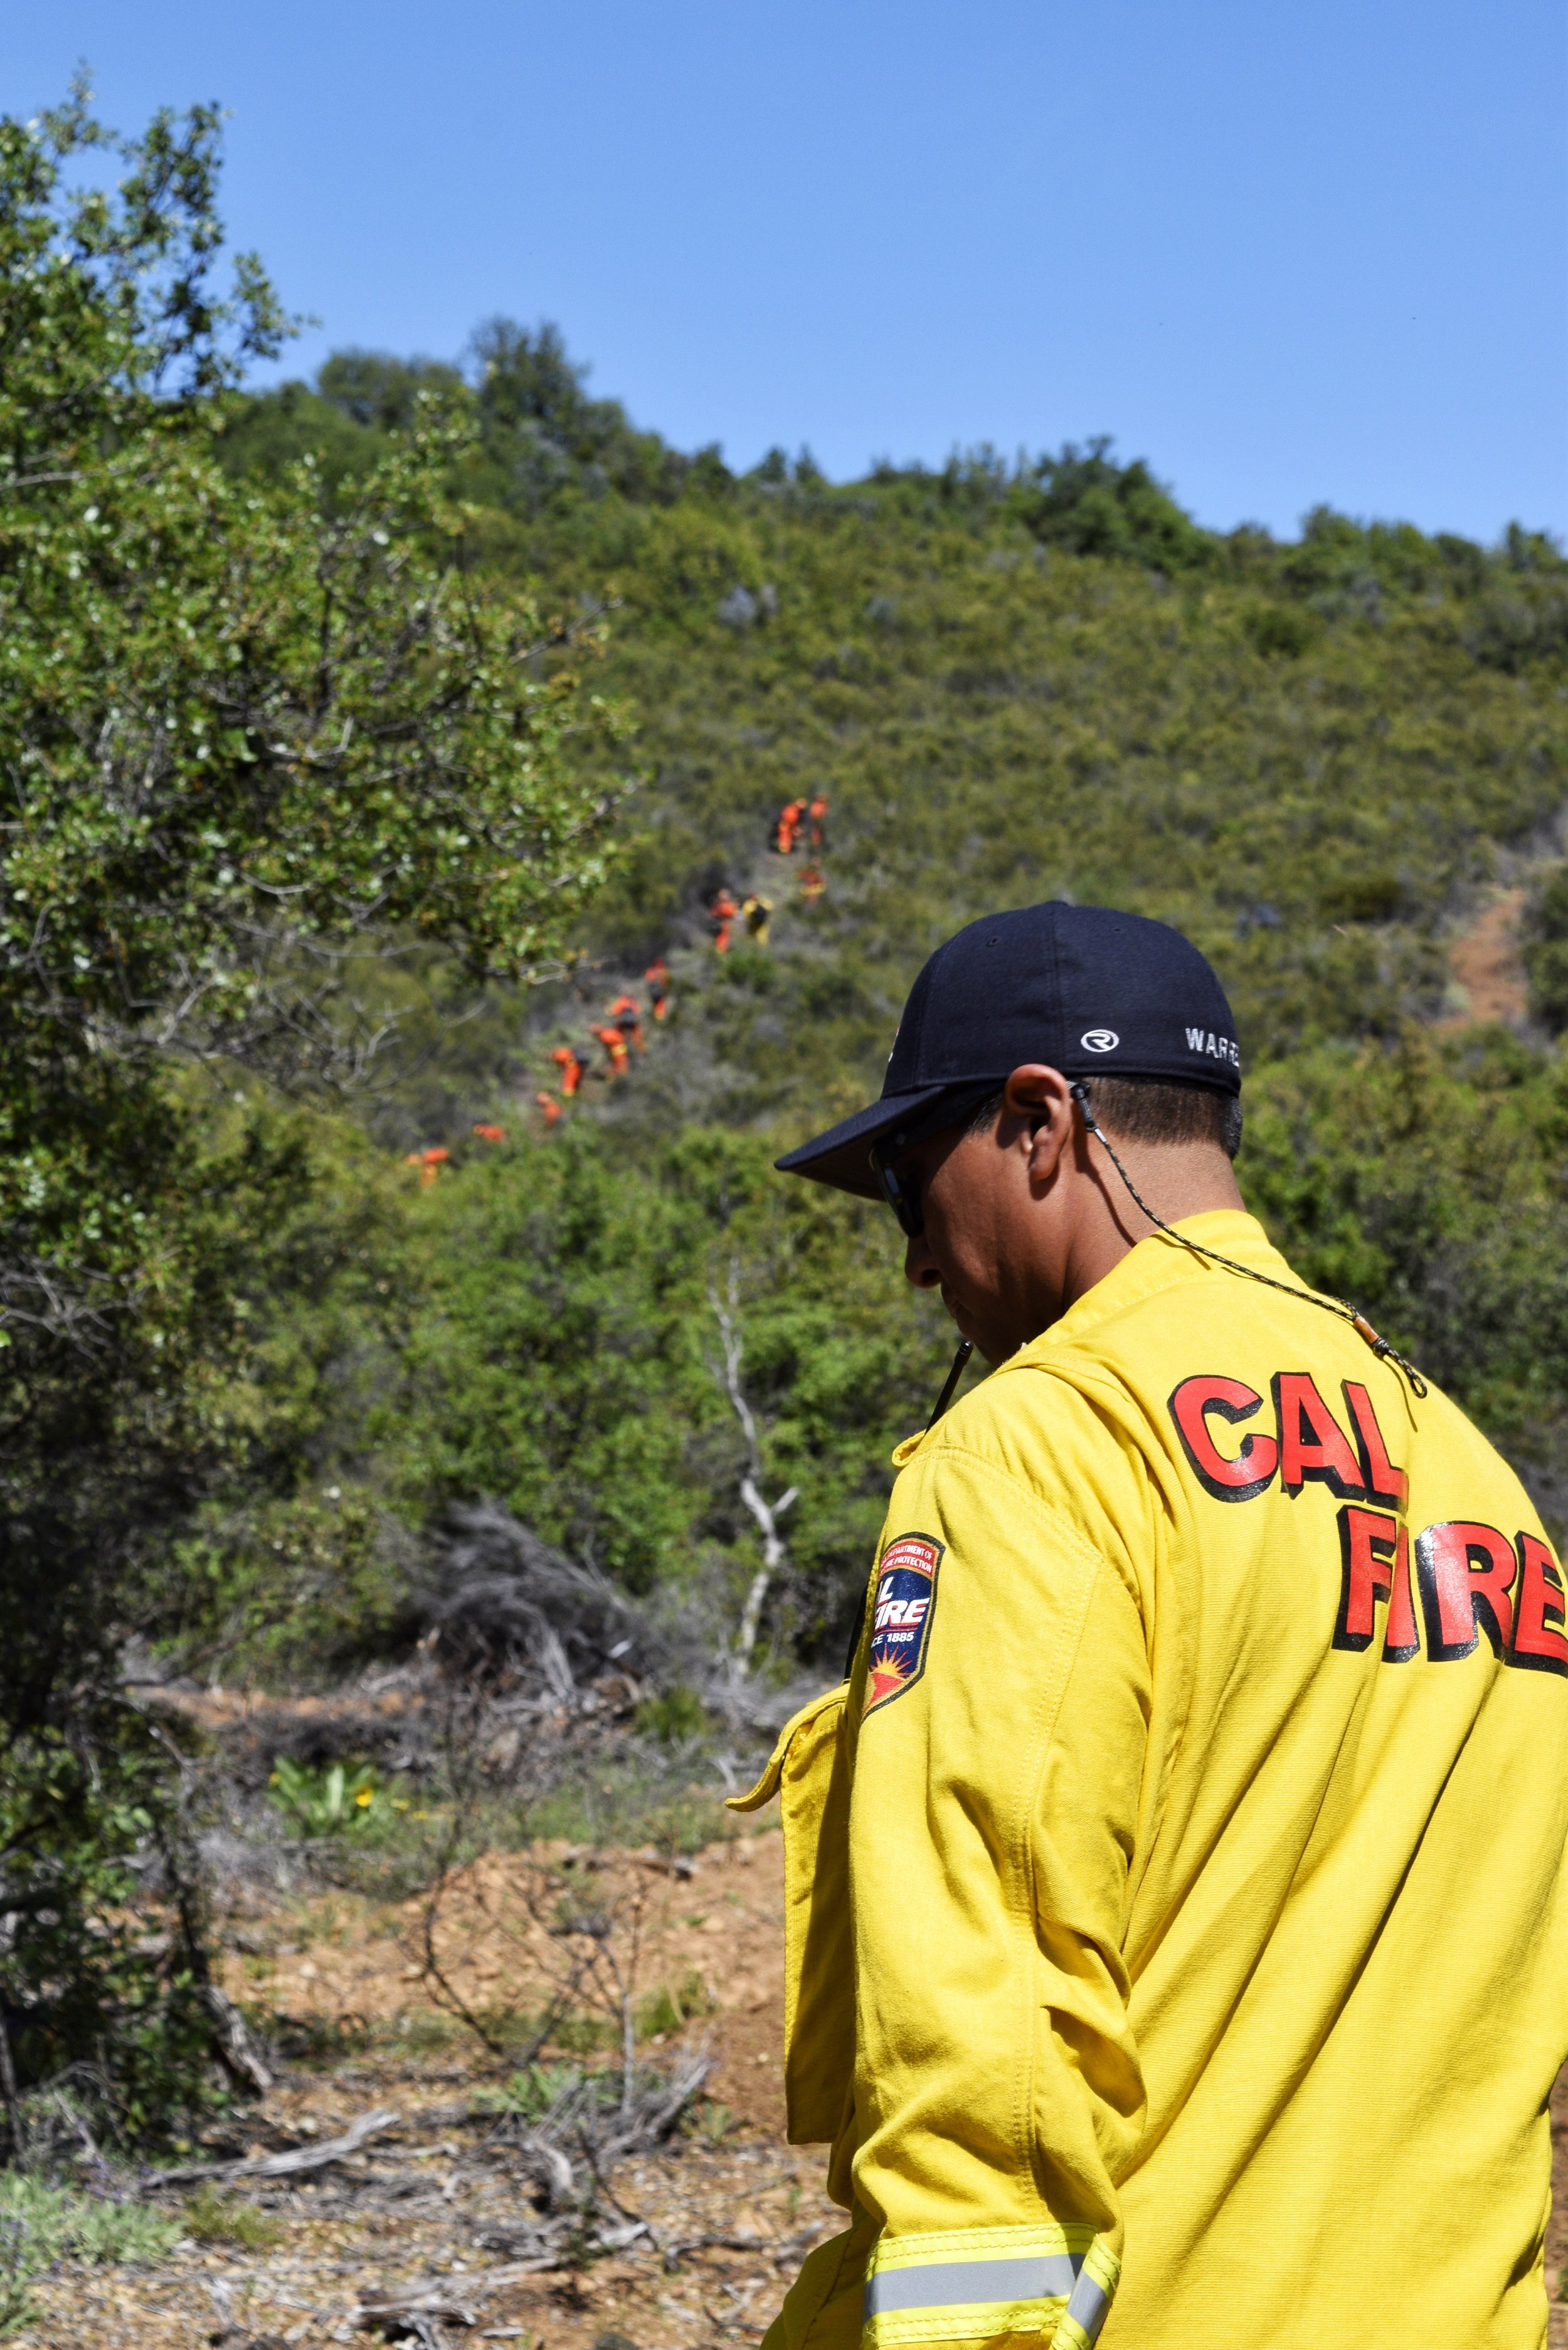 Capt Warren Parrish - made his way to the line-cutter crew that worked tirelessly to identify high-risk areas and clear the space of shrubs and stubs along the mountains.